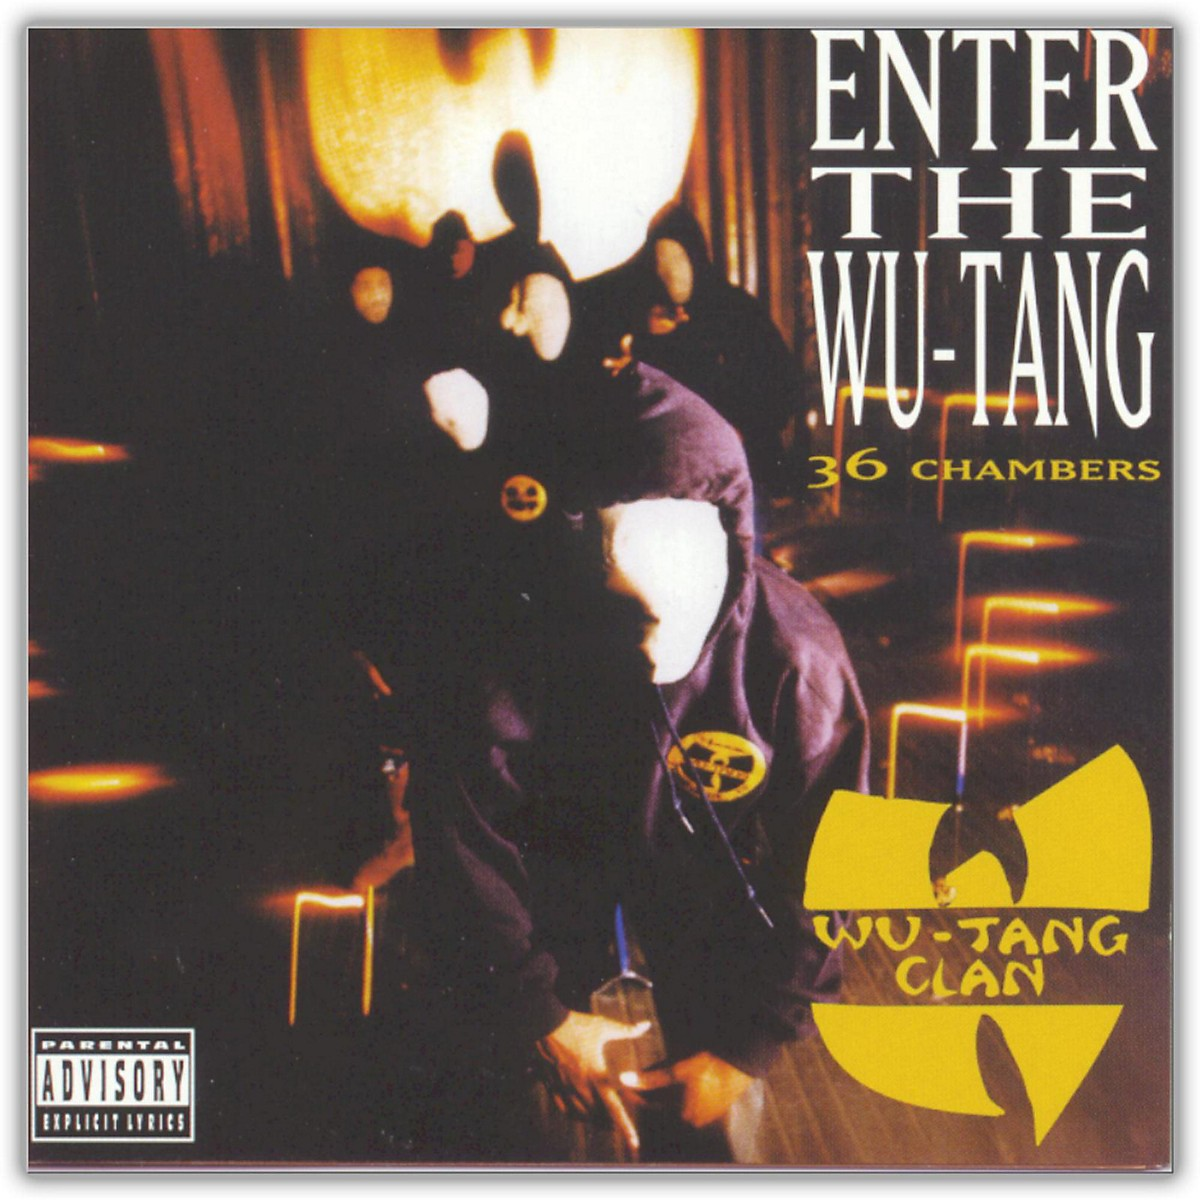 Sony Wu-Tang Clan - Enter the Wu-Tang Vinyl LP